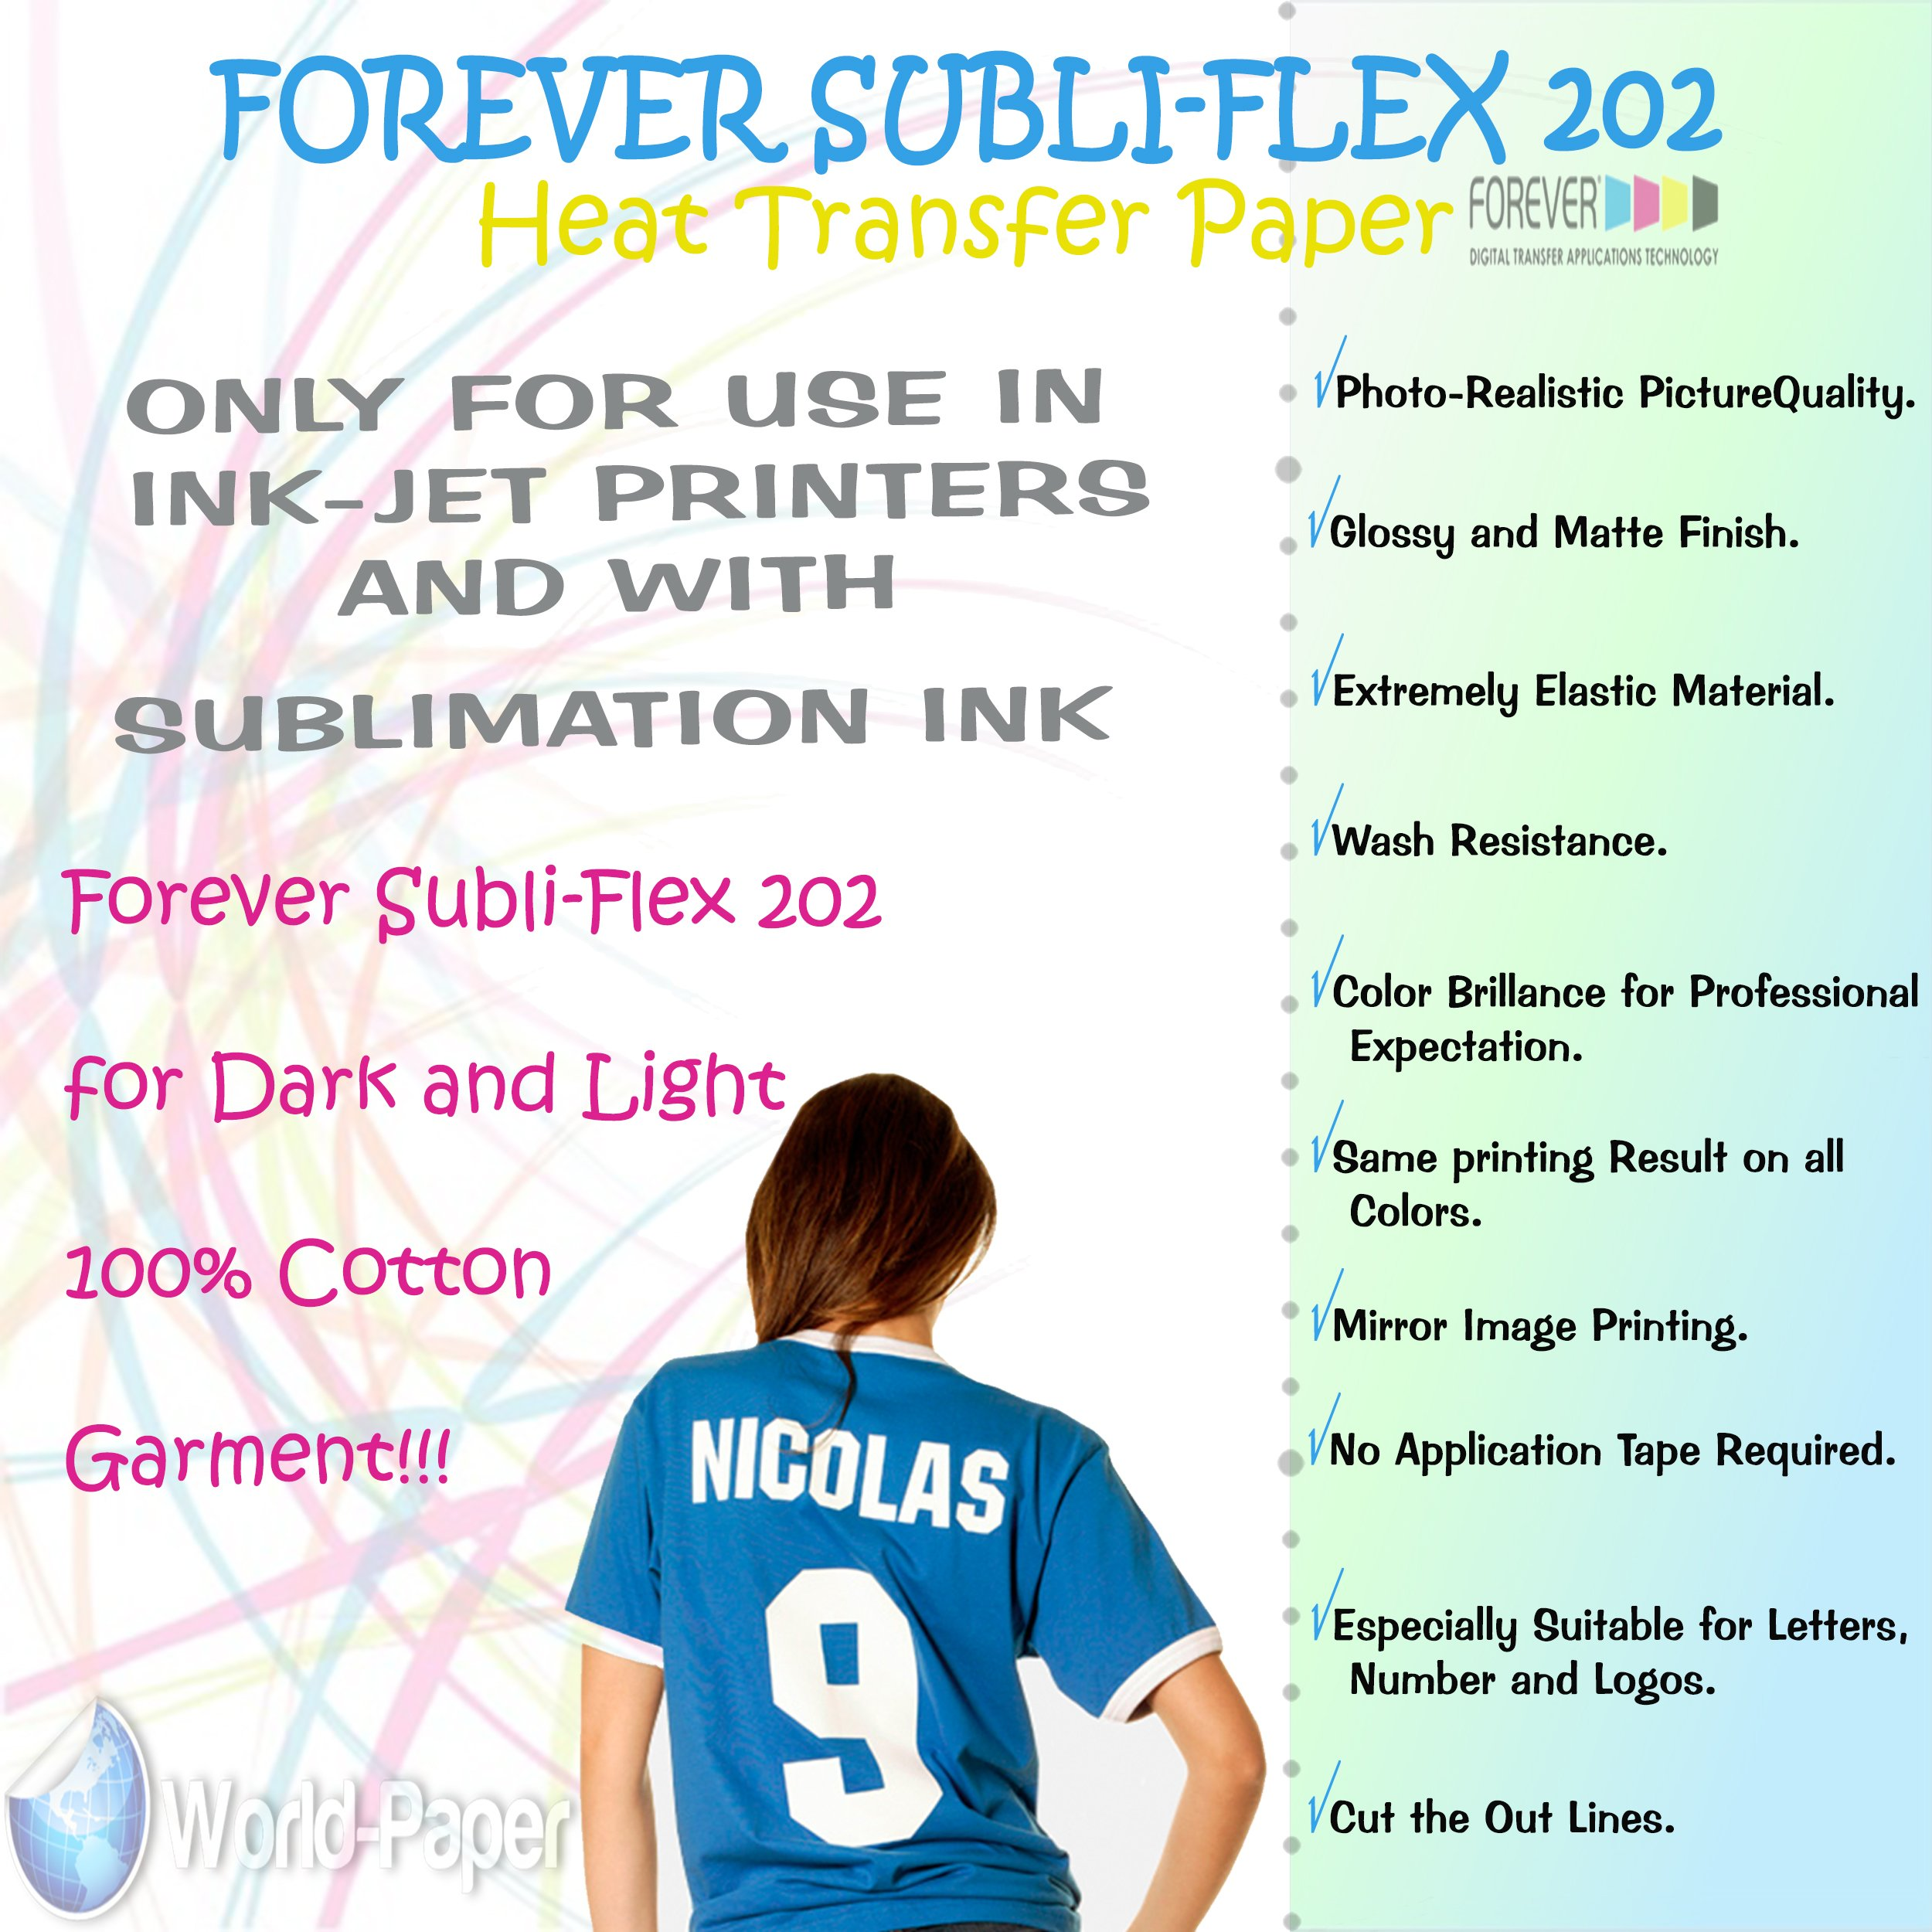 Cotton Sublimation Transfer Paper Forever SUBLI - Flex 202 (20 Sheets) by Forever Subli-Flex 202 World-Paper